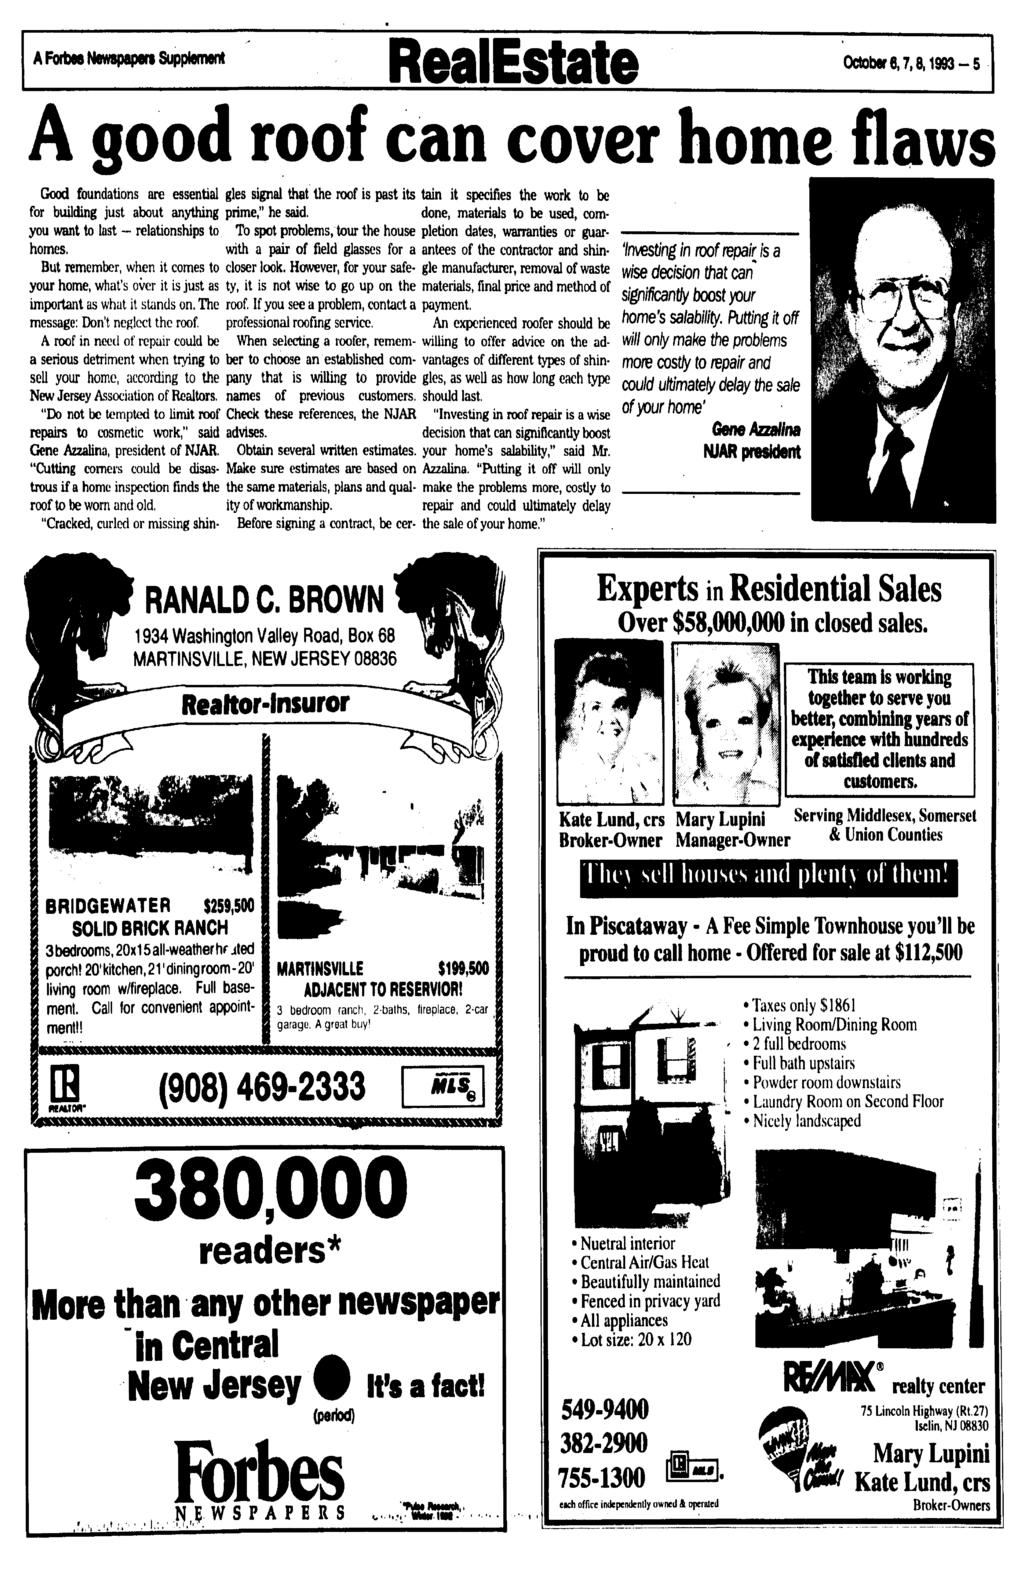 A Forbas Newspapers Supplement RealEstate October 6,7,8,1993-5 A good roof can cover home flaws Good foundations are essential for building just about anything you want to last - relationships to